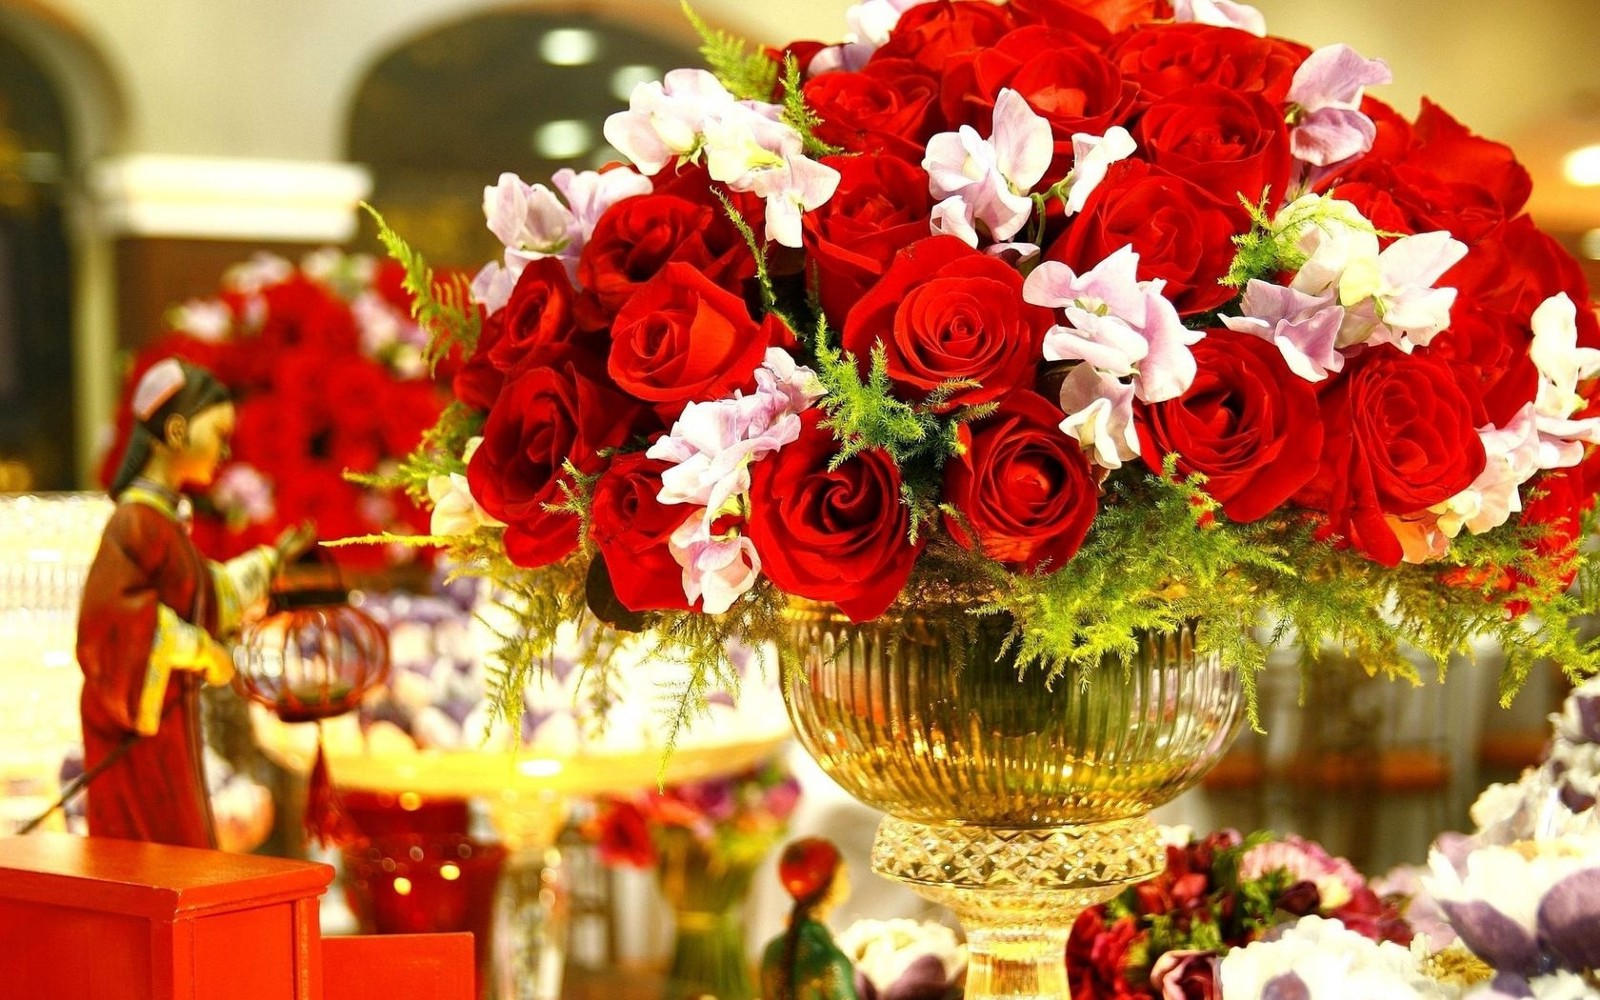 Some beautiful flowers ideas for a amazing parties miya roy medium success parties are always the matter of joy because it illustrates the hard work of a person for this single day it may take hours of sleepless nights so izmirmasajfo